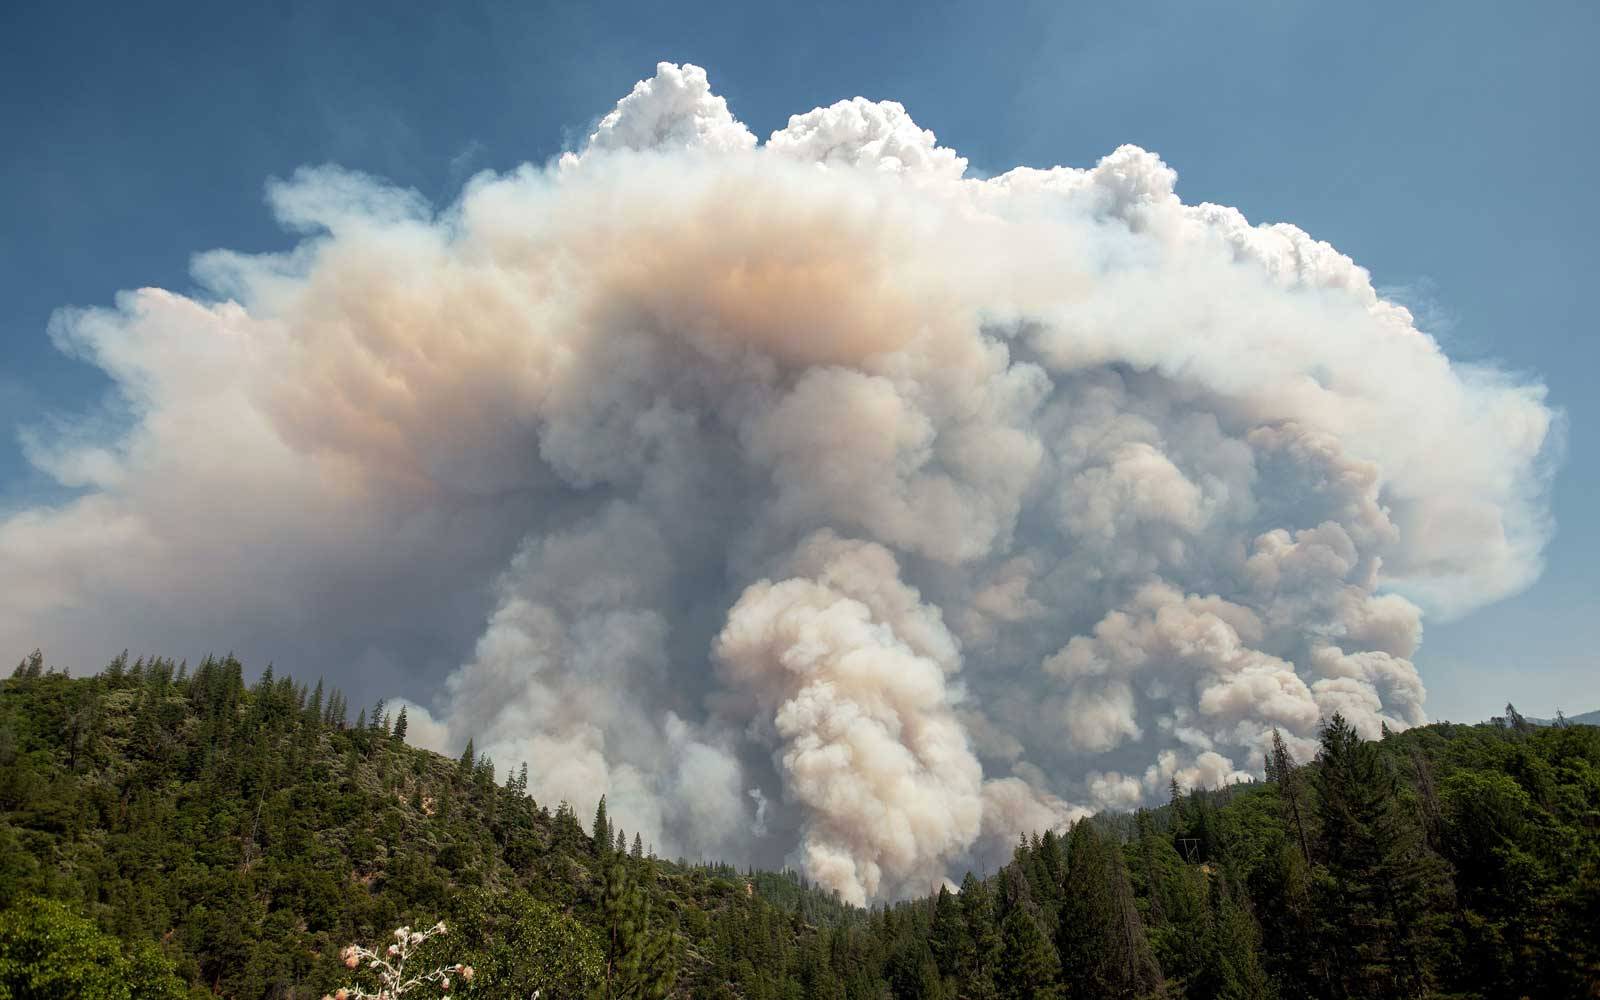 A large pyrocumulus cloud (or cloud of fire) explodes outward during the Carr fire near Redding, California on July 27, 2018.